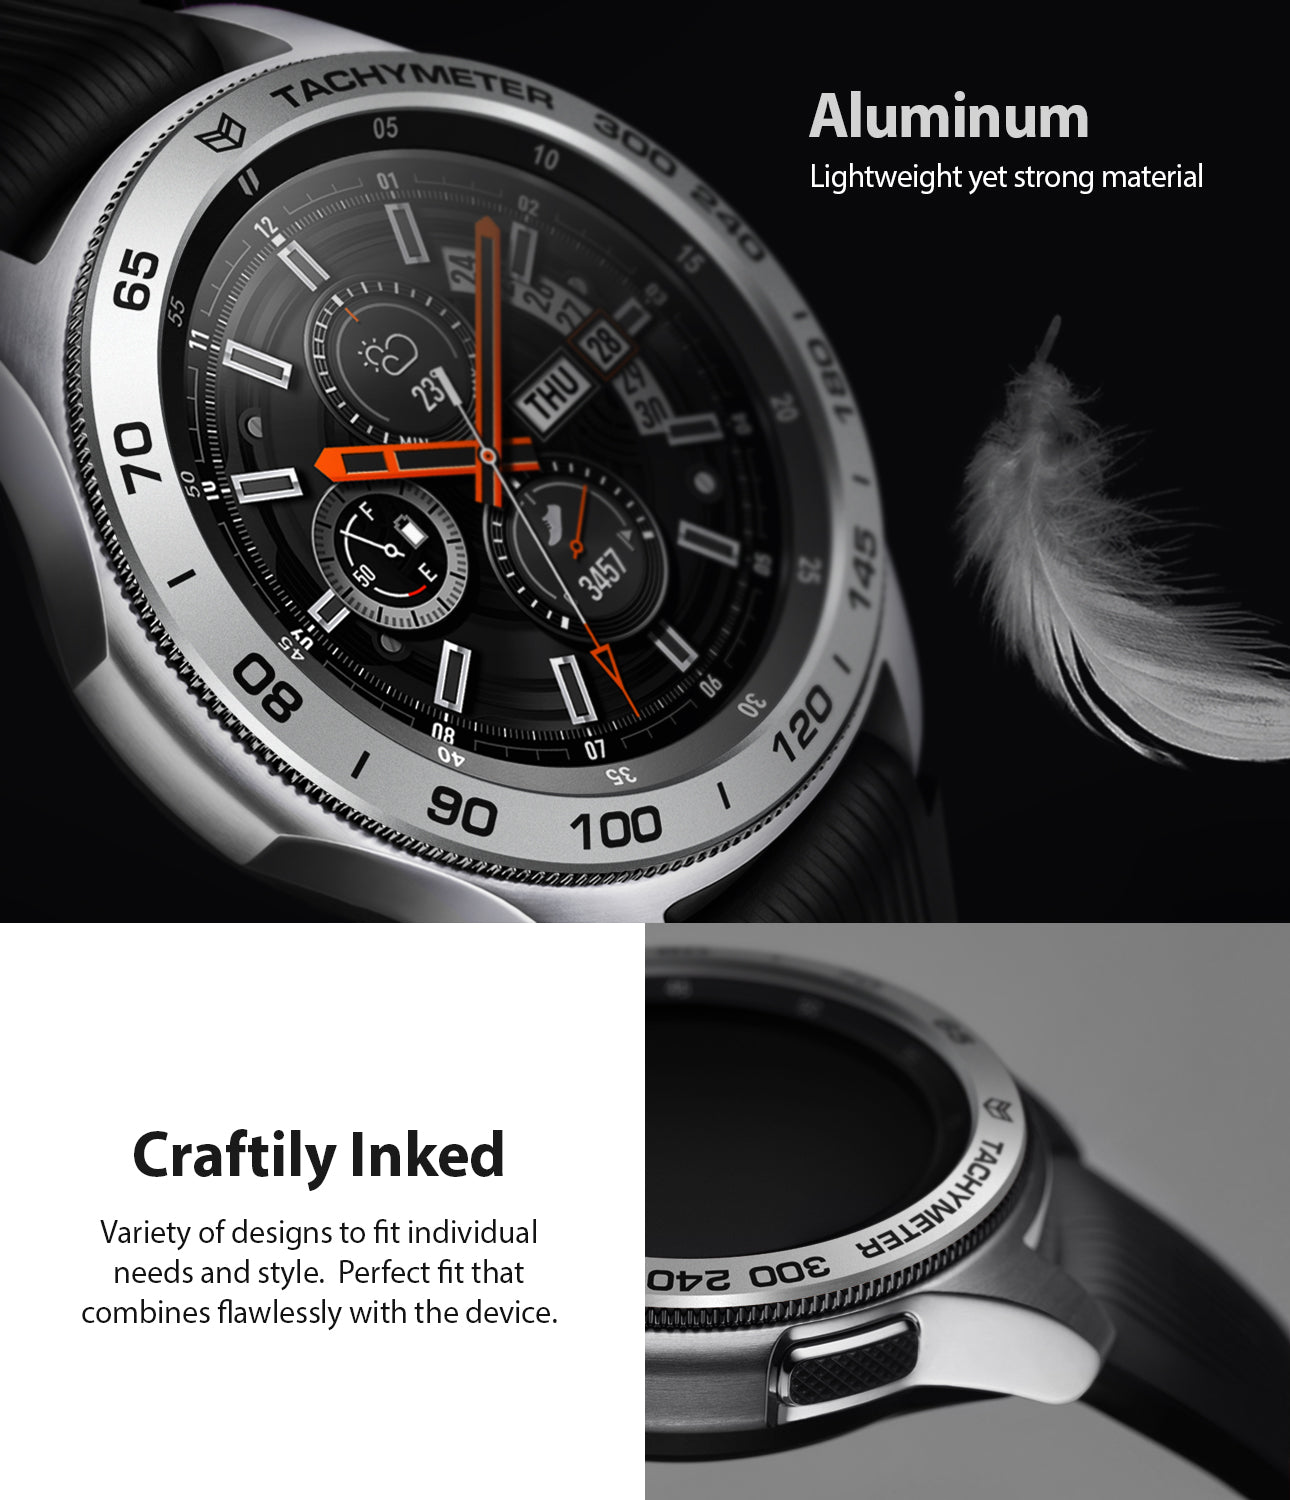 ringke bezel styling made with lightweight yet strong aluminium